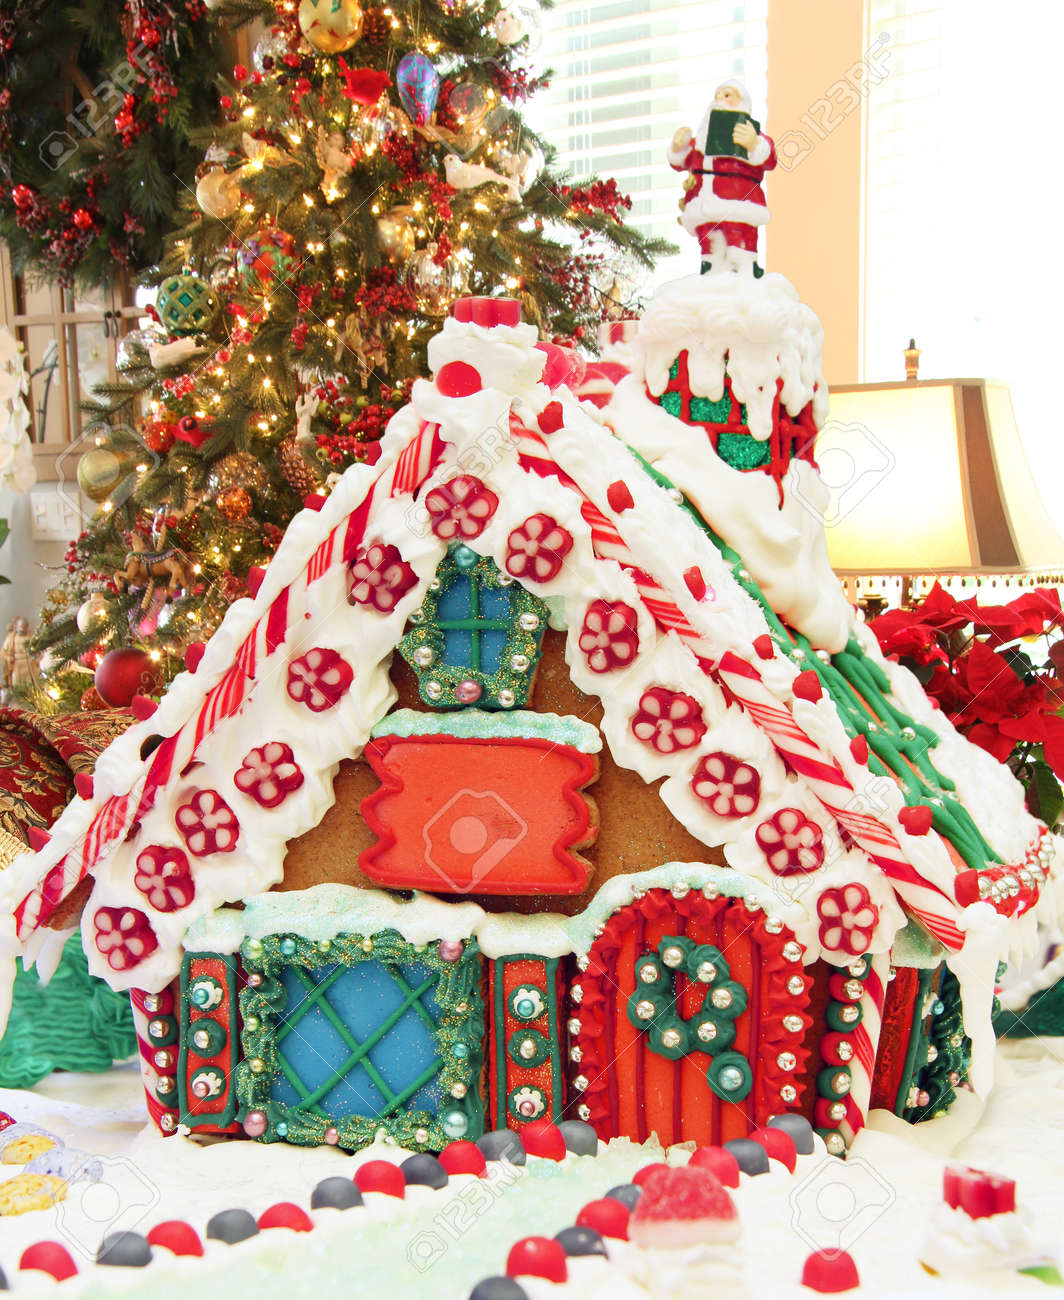 Christmas Gingerbread House Background.Homemade Christmas Gingerbread House With Christmas Tree In The